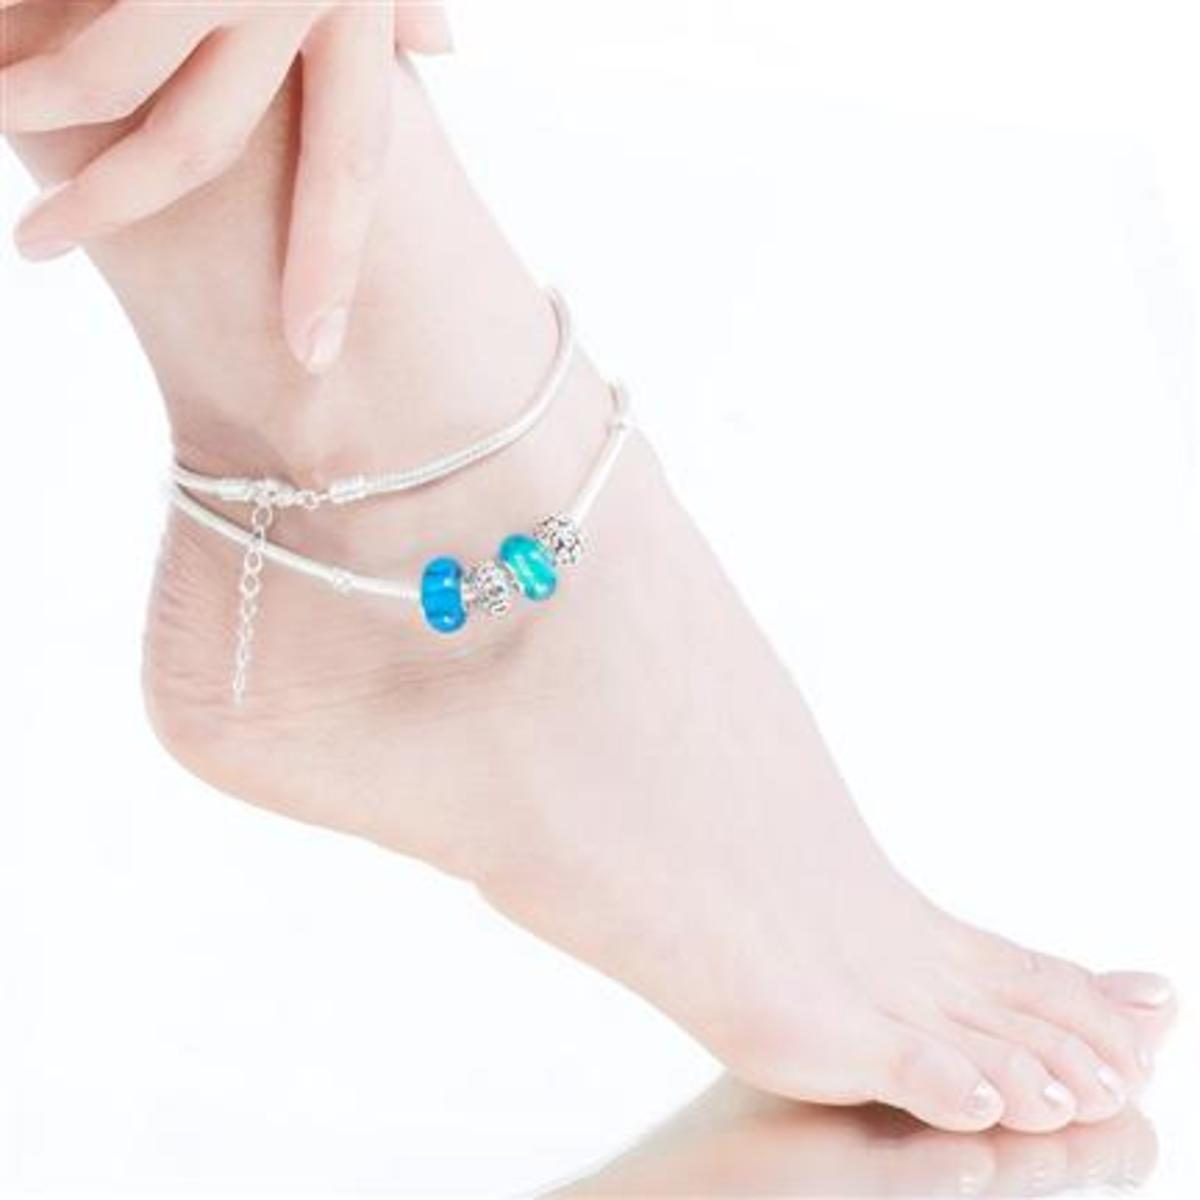 Pandora Anklets Are Going To be Hot This Summer